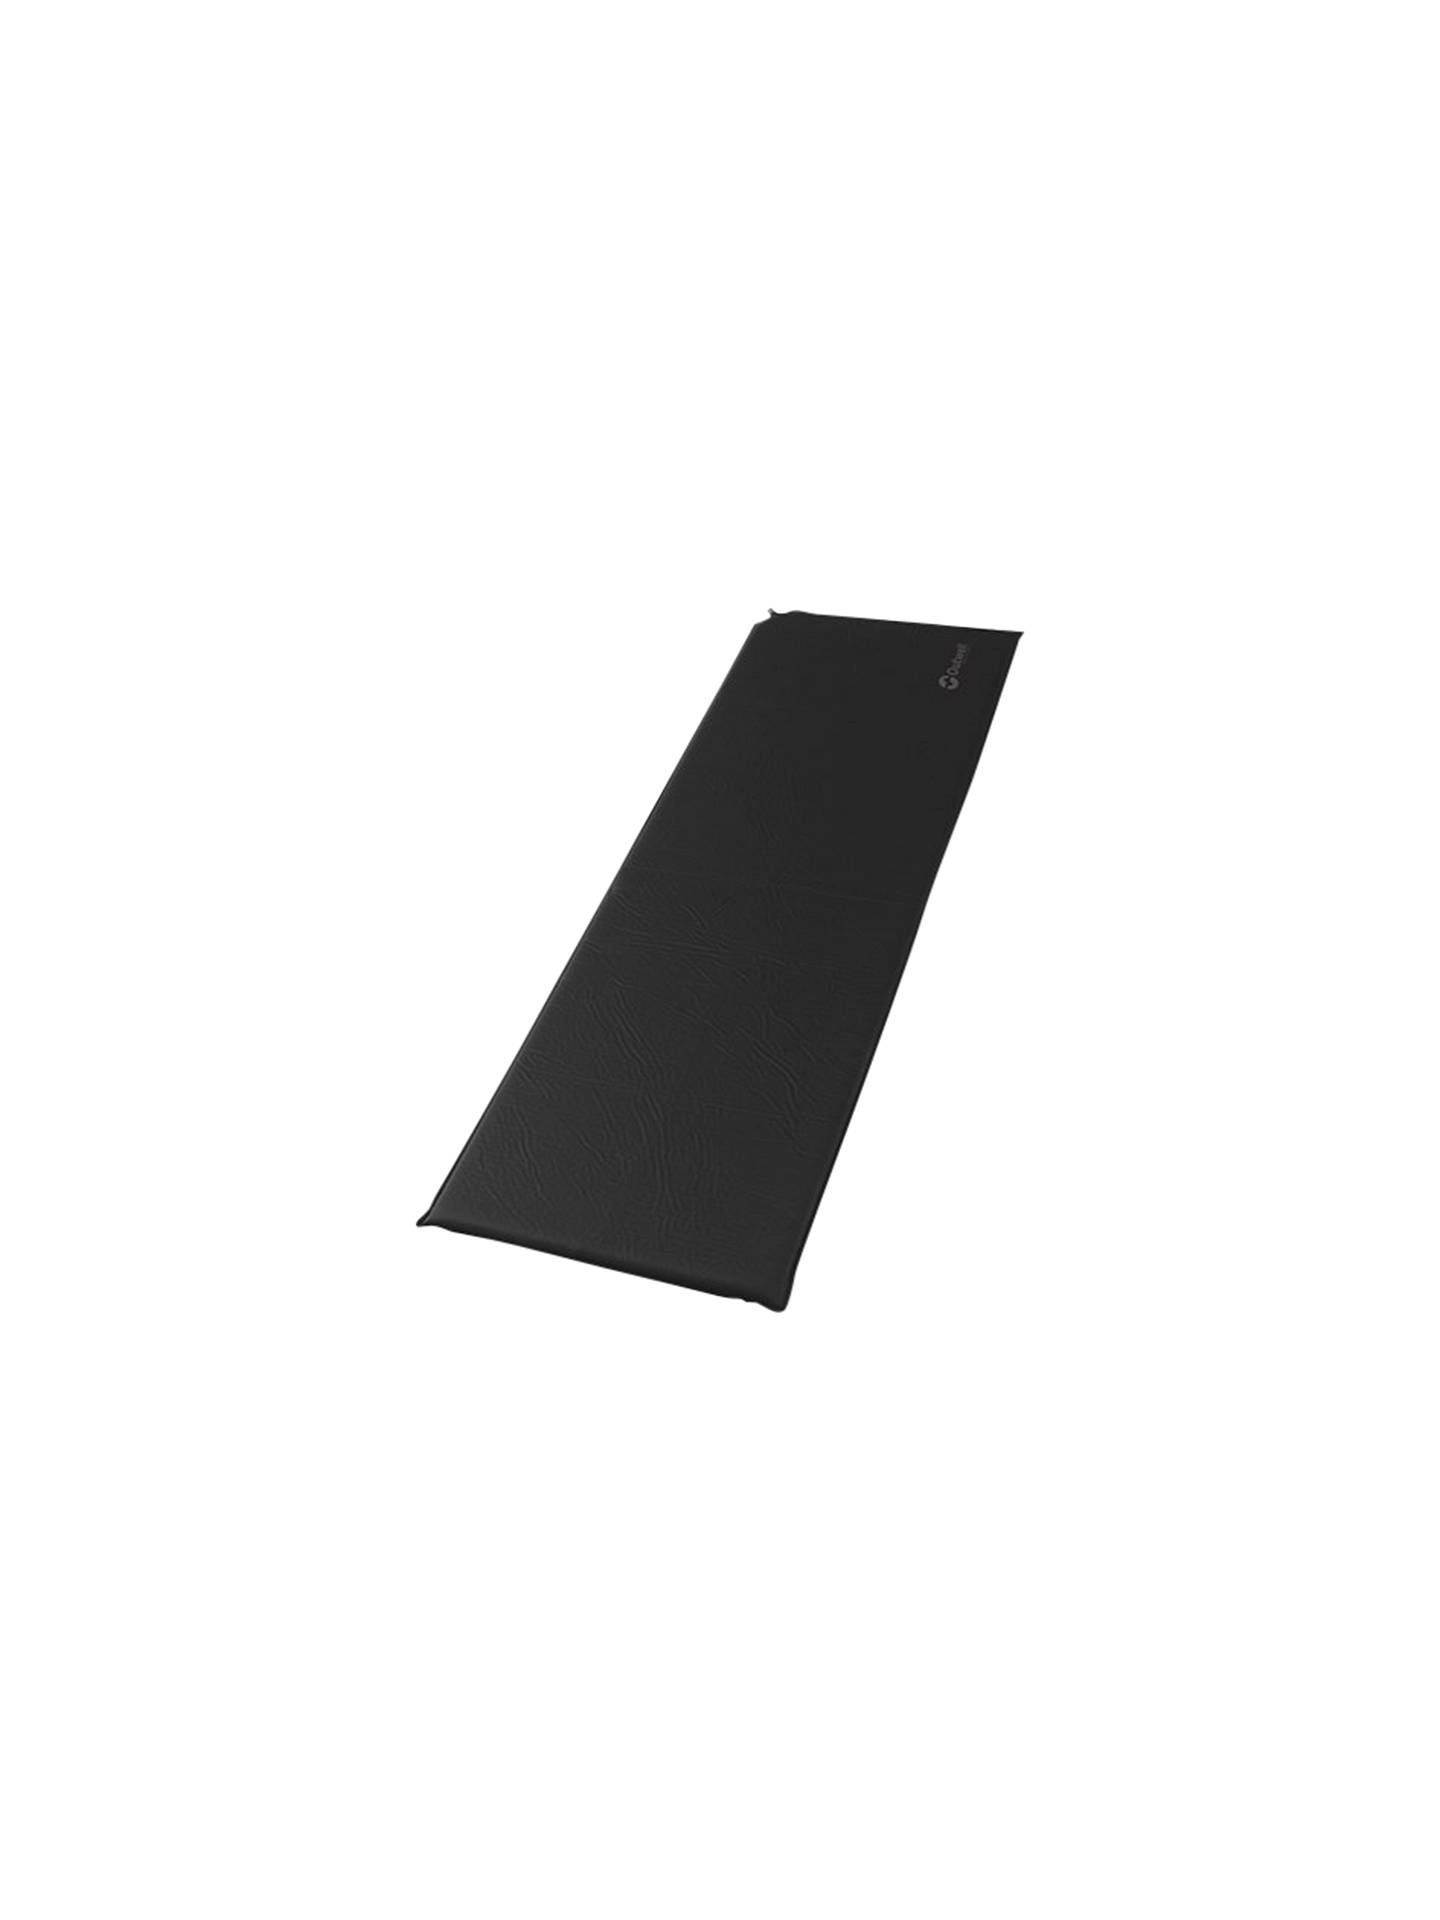 Buy Outwell Sleepin Single 3.0cm Inflatable Camping Mat, Black Online at johnlewis.com